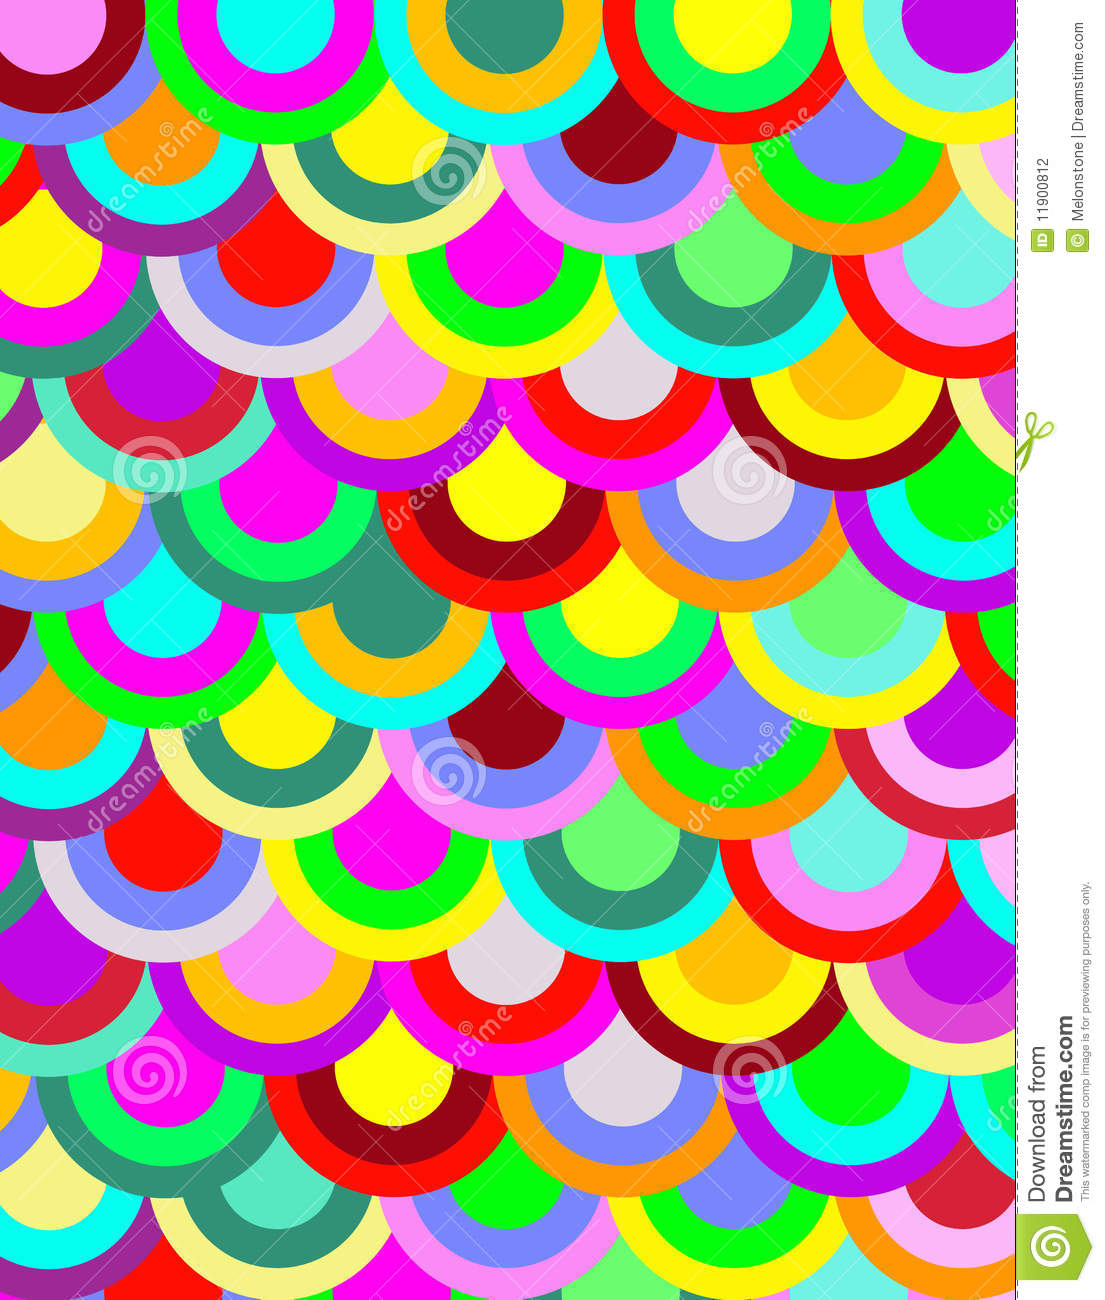 Free Wallpaper Fall Colours Bright Circle Pattern Stock Illustration Illustration Of